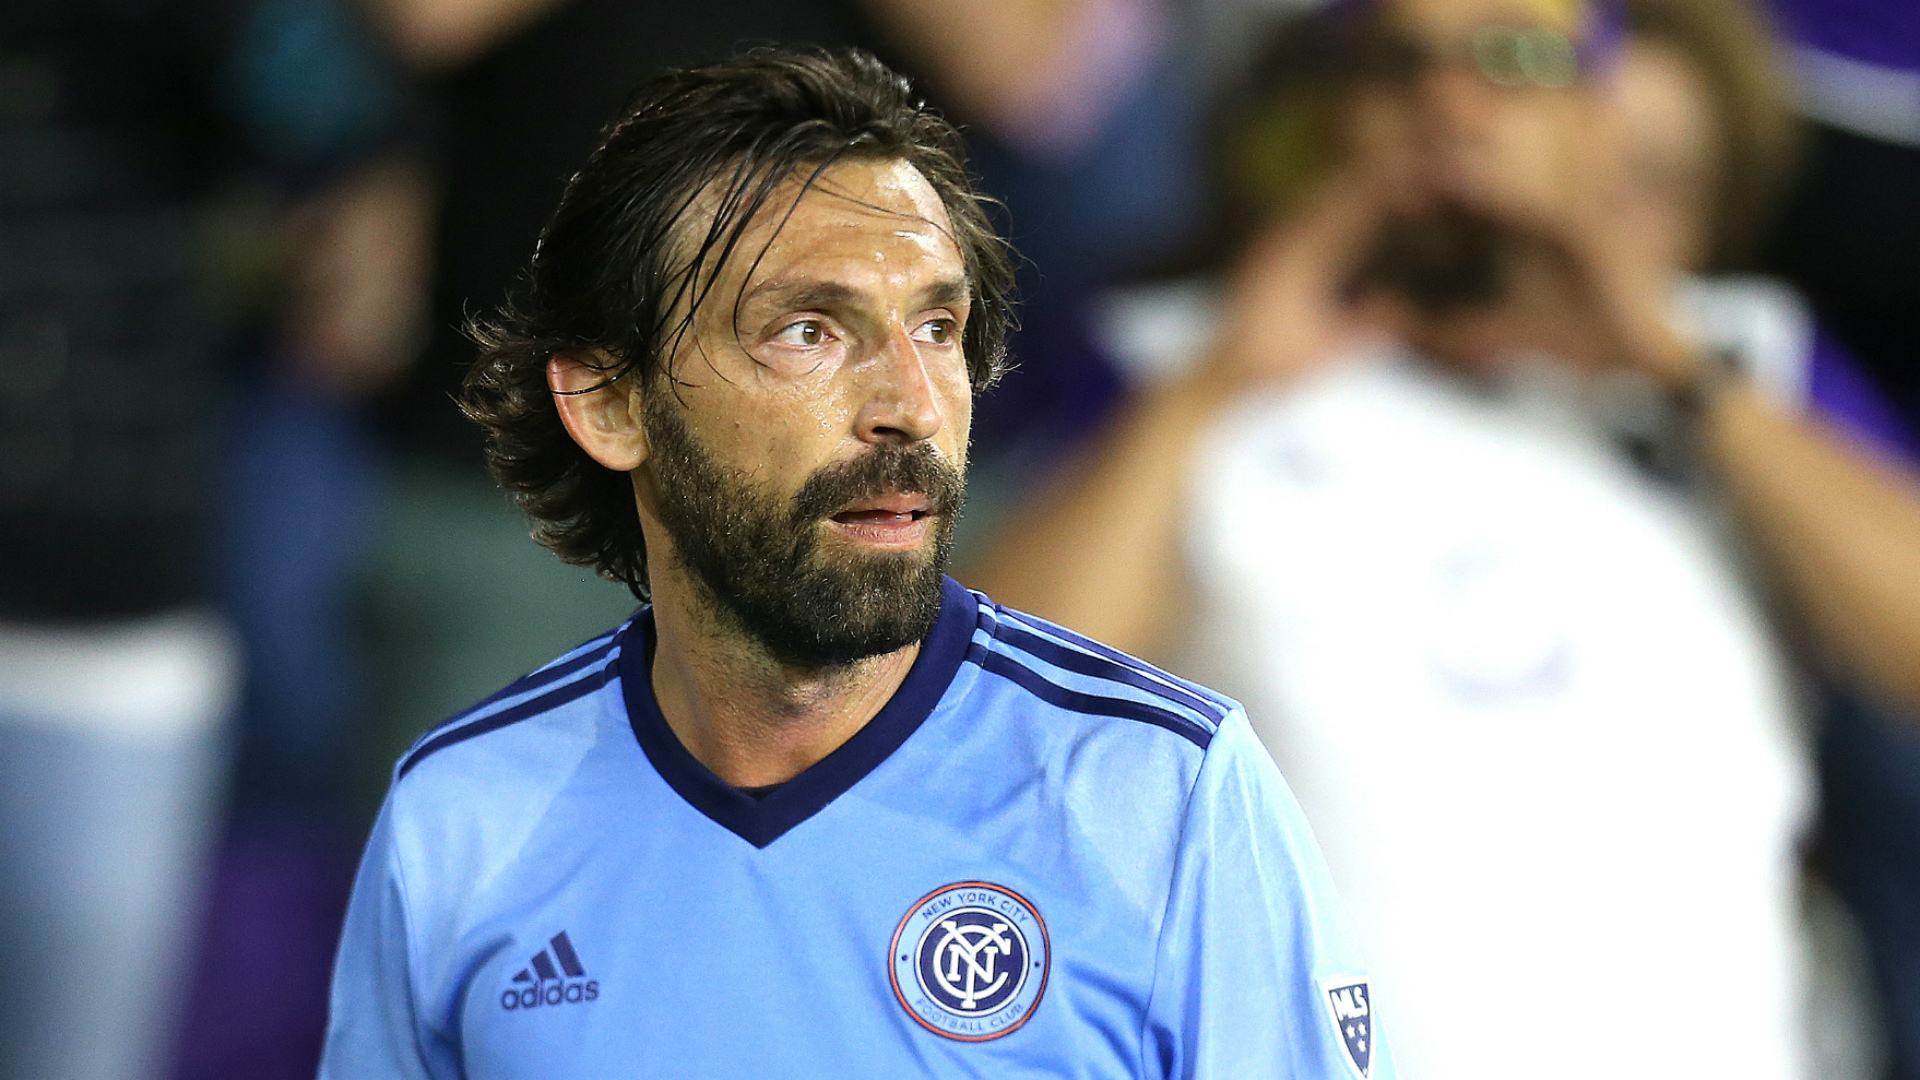 https://images.performgroup.com/di/library/GOAL/bf/f2/andrea-pirlo-new-york-city-fc_a2d1sxxos1ij11sn19m8xxolt.jpg